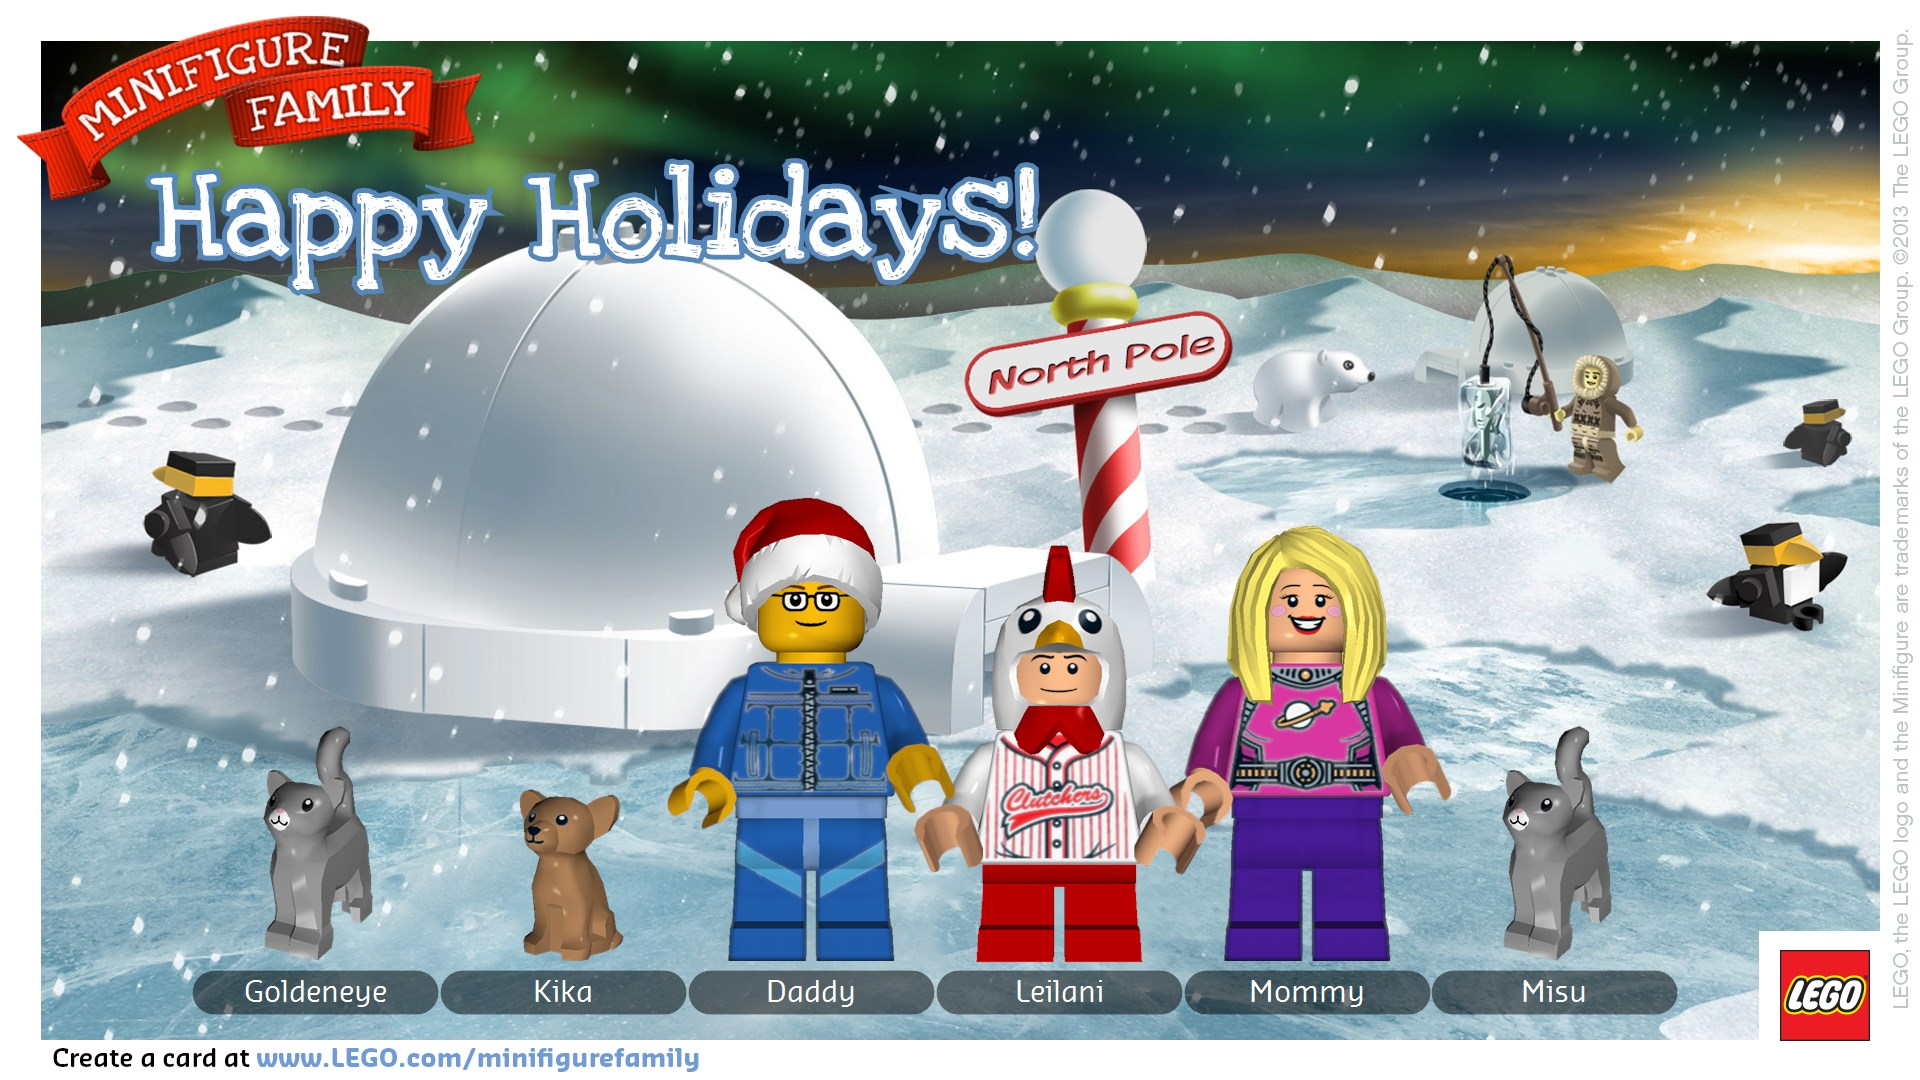 Kids can create cute holiday cards with LEGO Minifigure Family